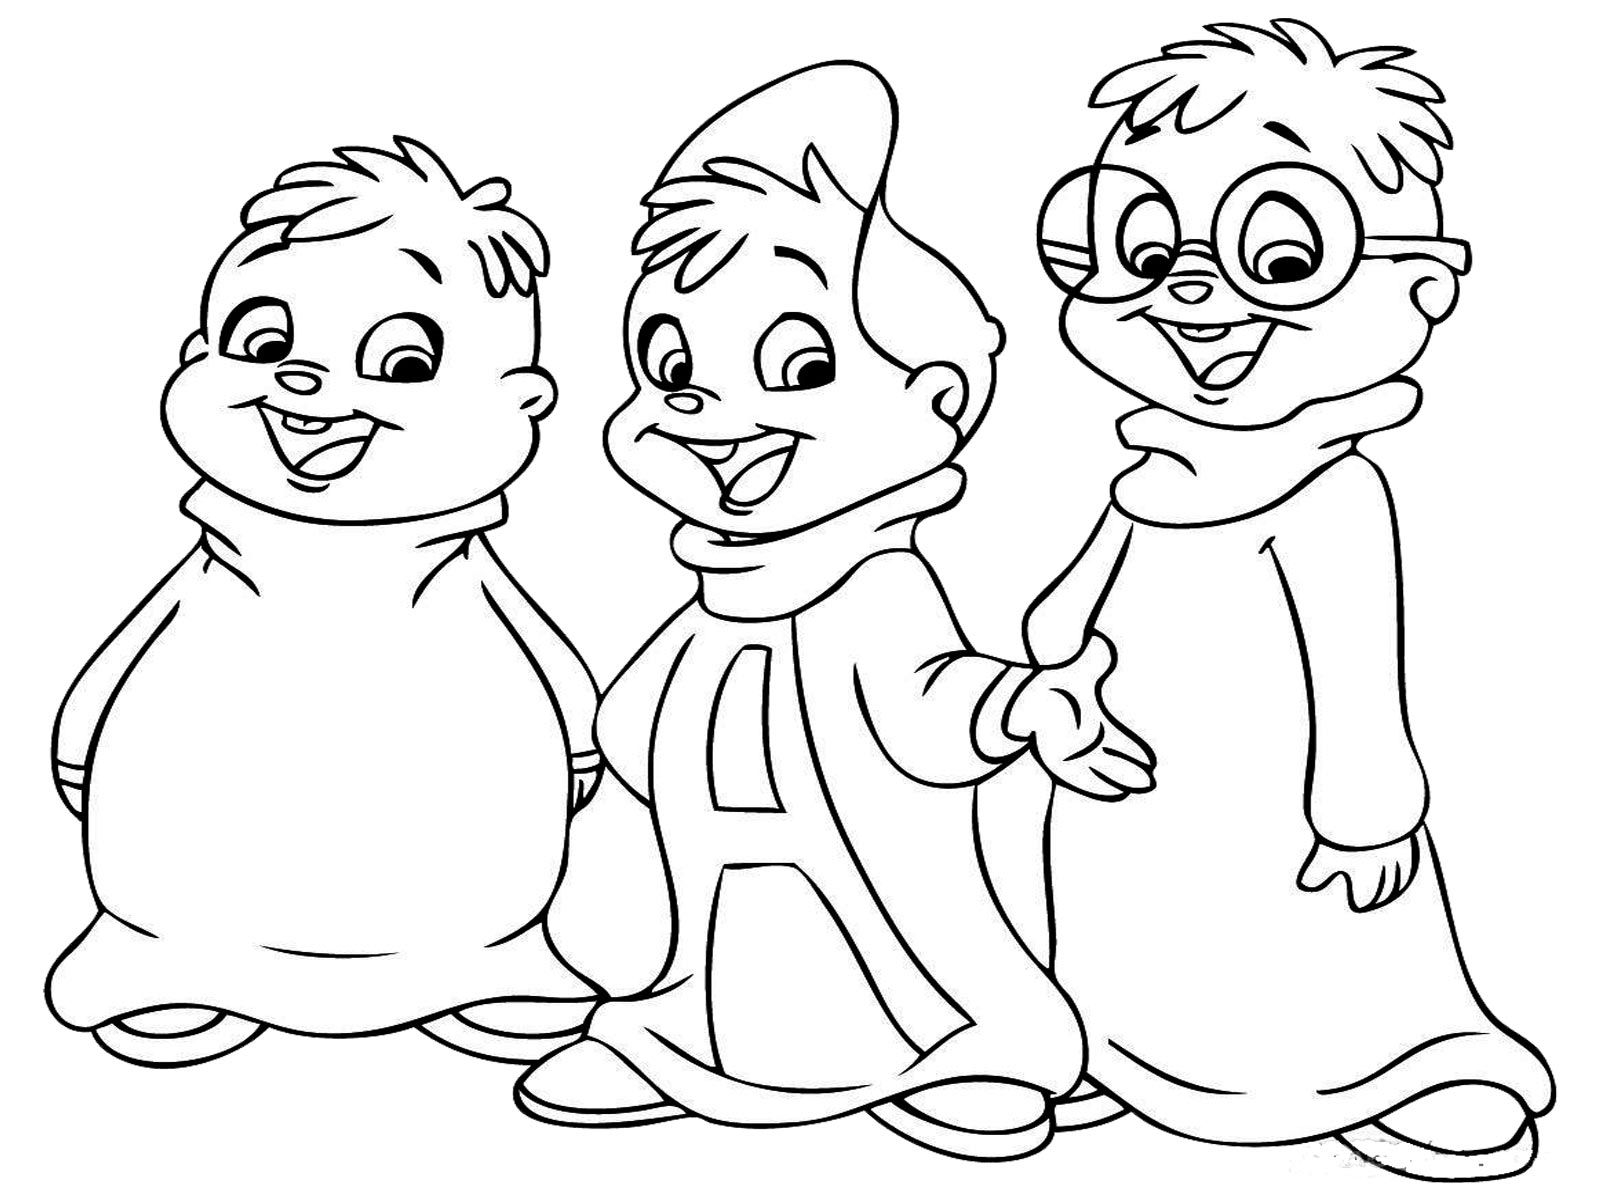 free printable cartoon coloring pages - Childrens Printable Coloring Pages